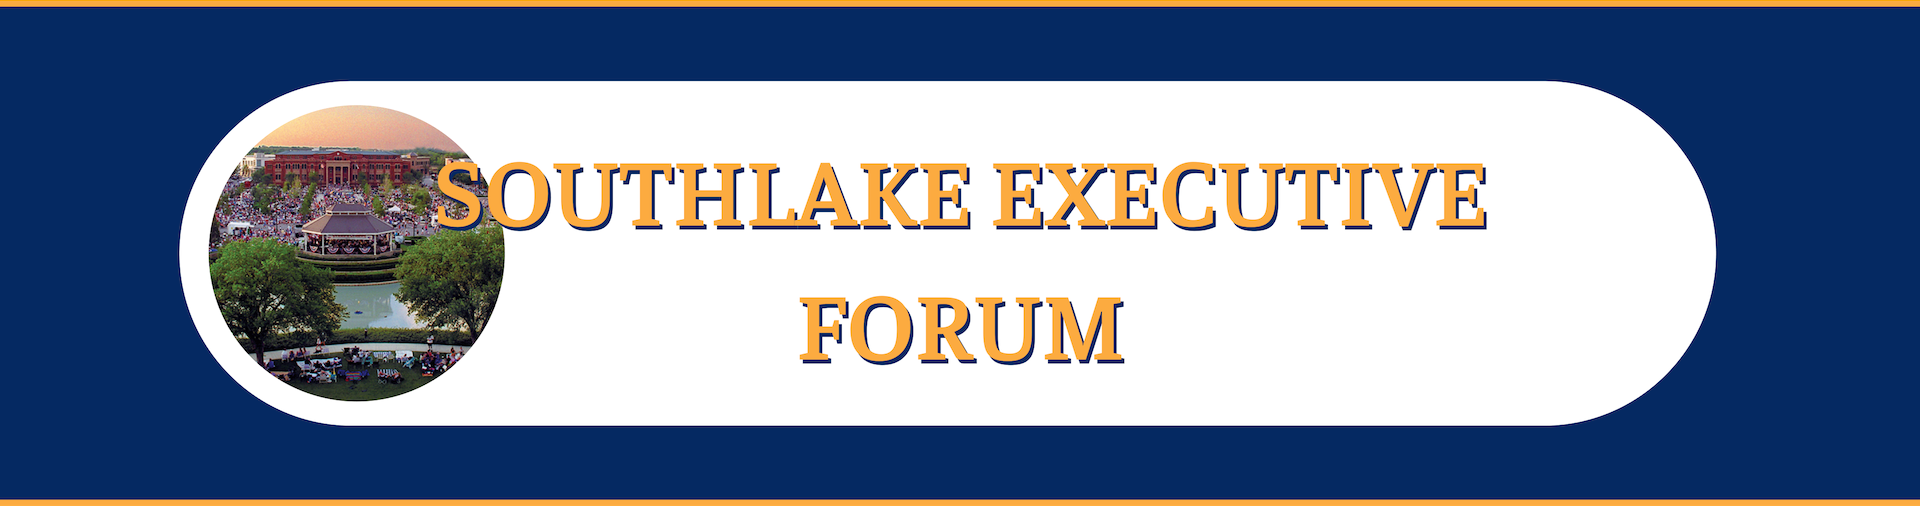 Southlake Executive Forum Header Image